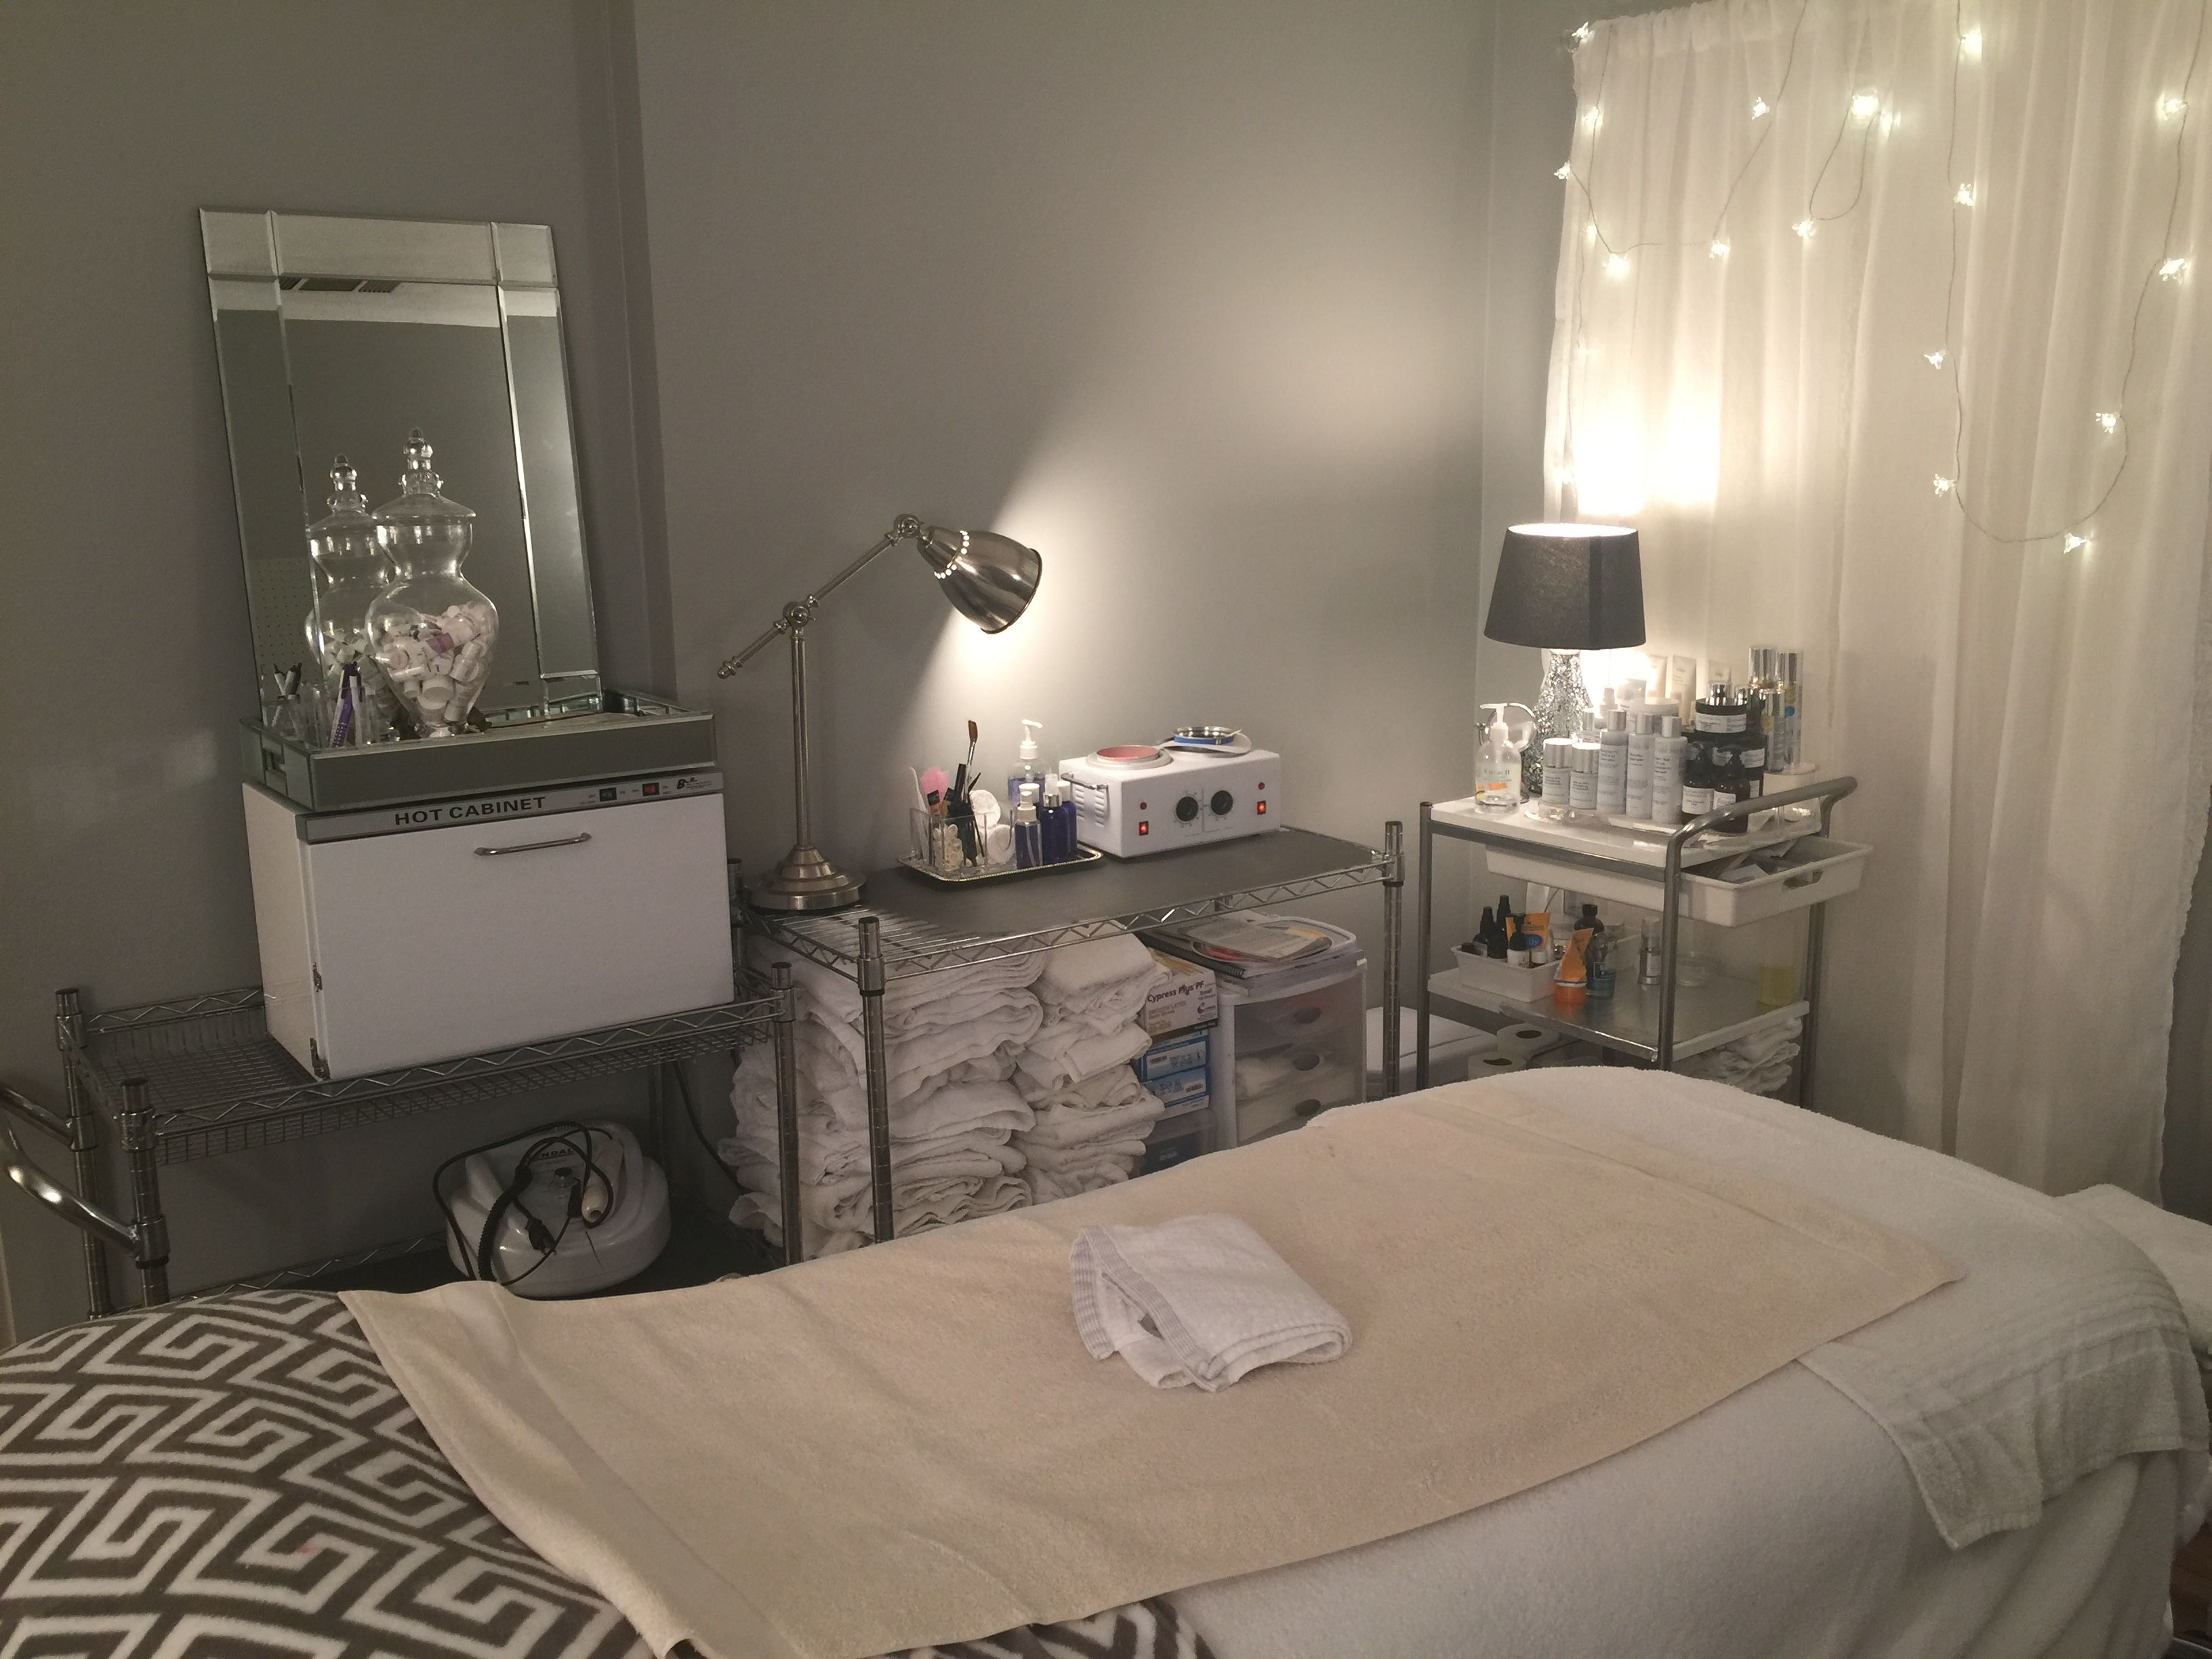 Skincare Studio Skincare By Kimbella Offers A Variety Of